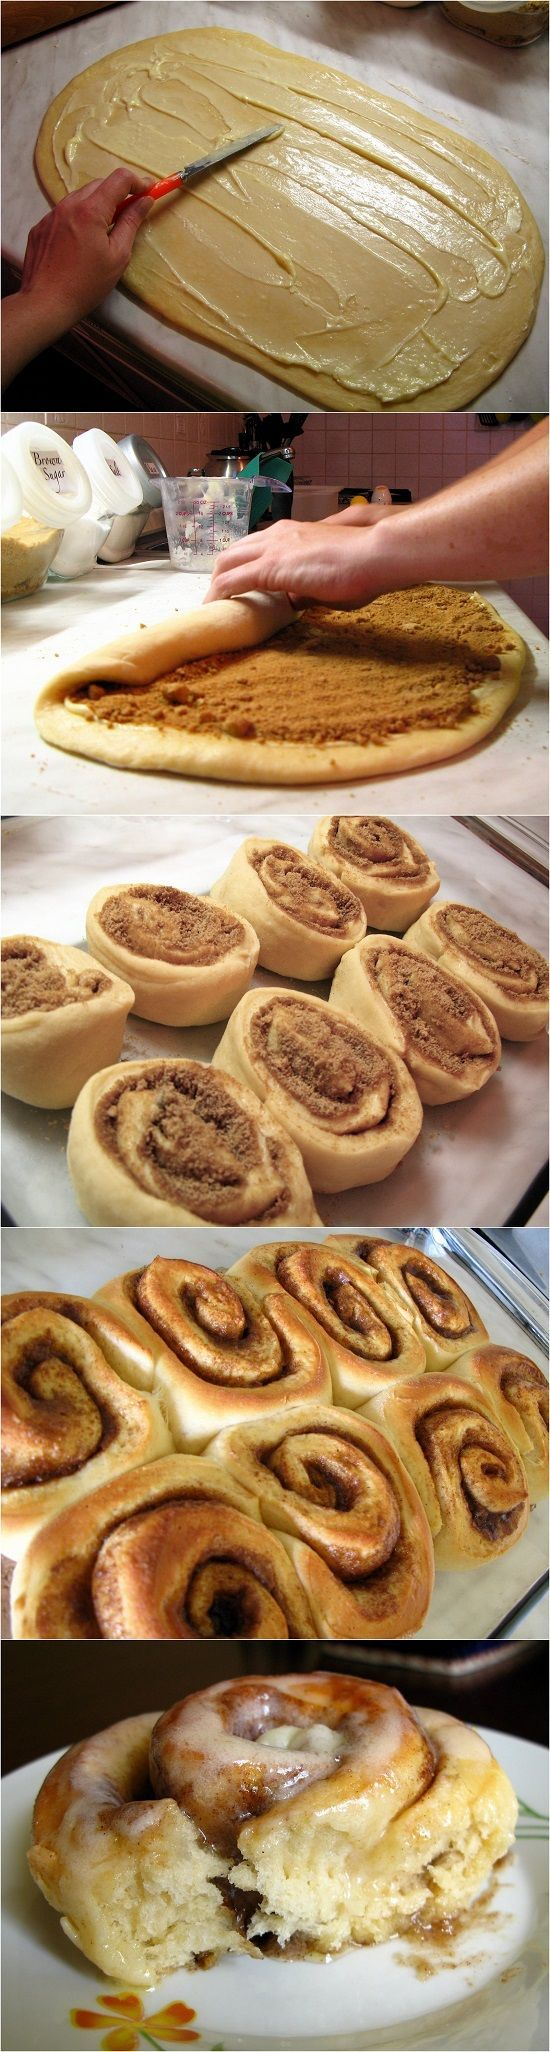 Easy Cinnamon Rolls - I love this recipe